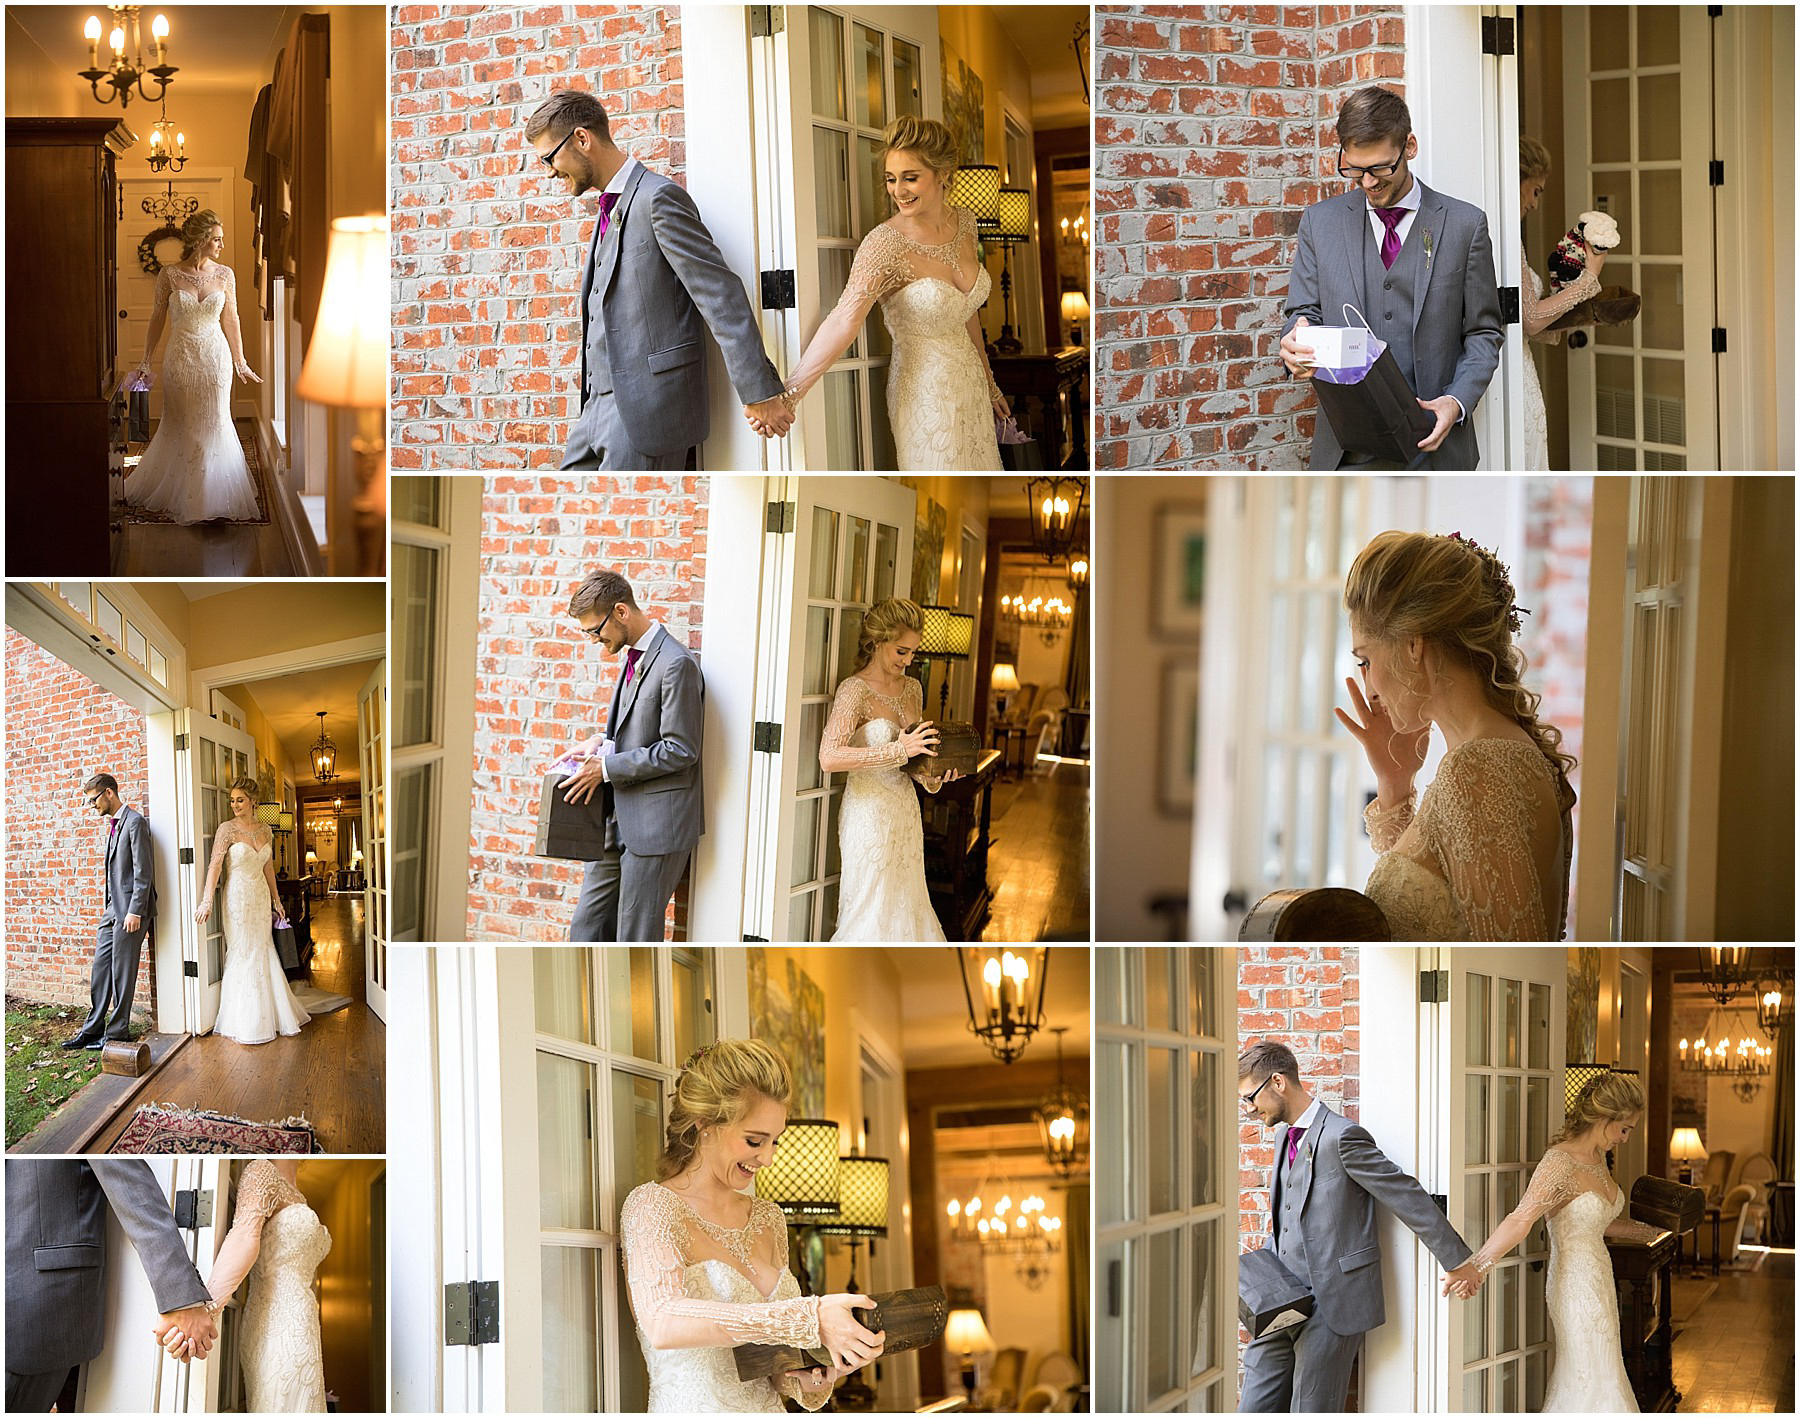 Twickenham House Wedding Photos - Gift Exchange